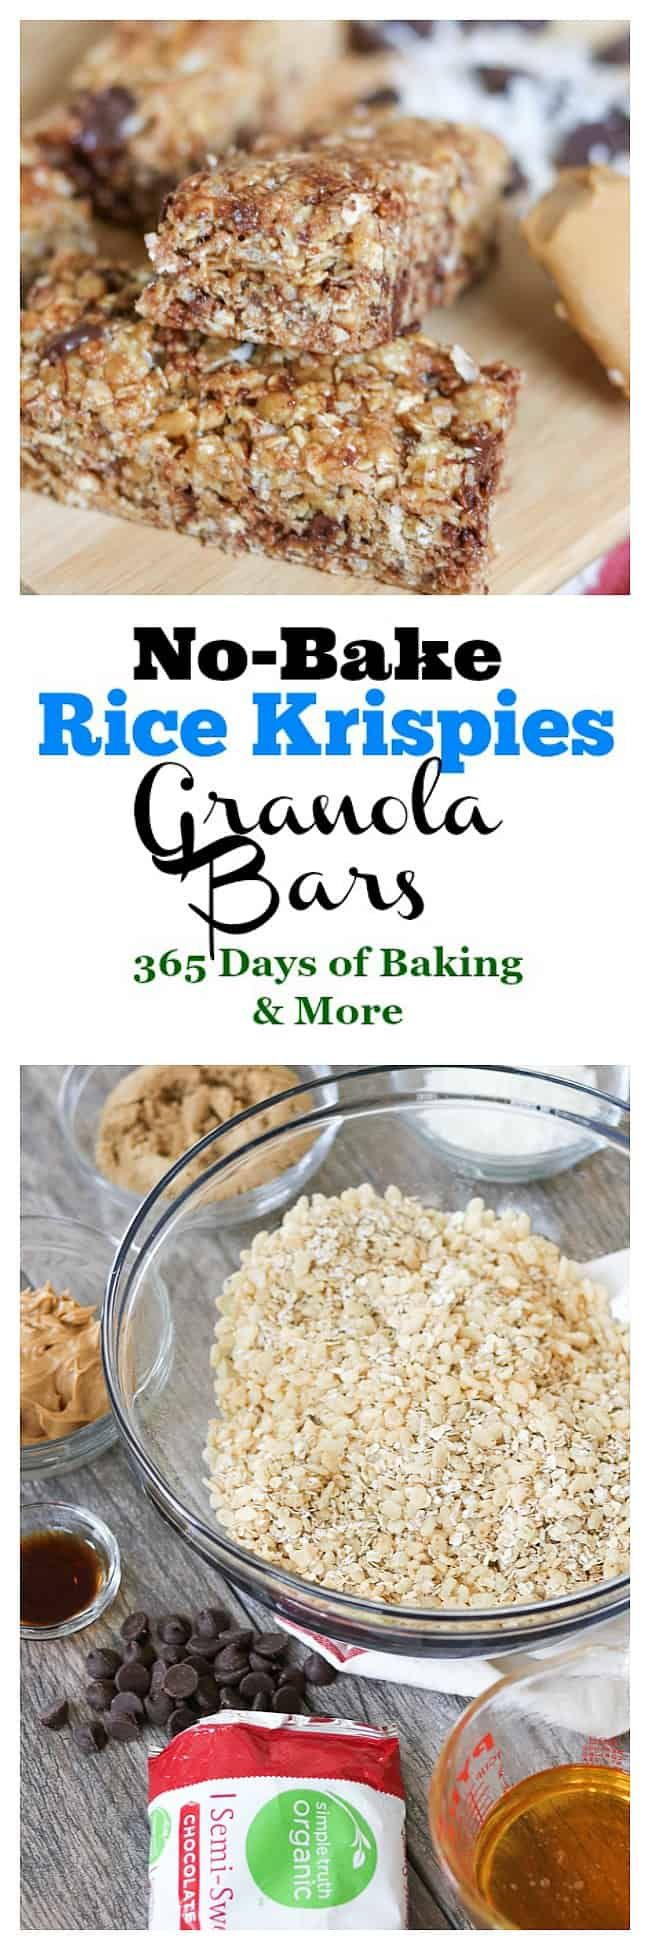 These No-Bake Rice Krispies Granola Bars are a perfect bite for breakfast on the go. Soft, crunchy and slightly sweet, they're made with Rice Kri...